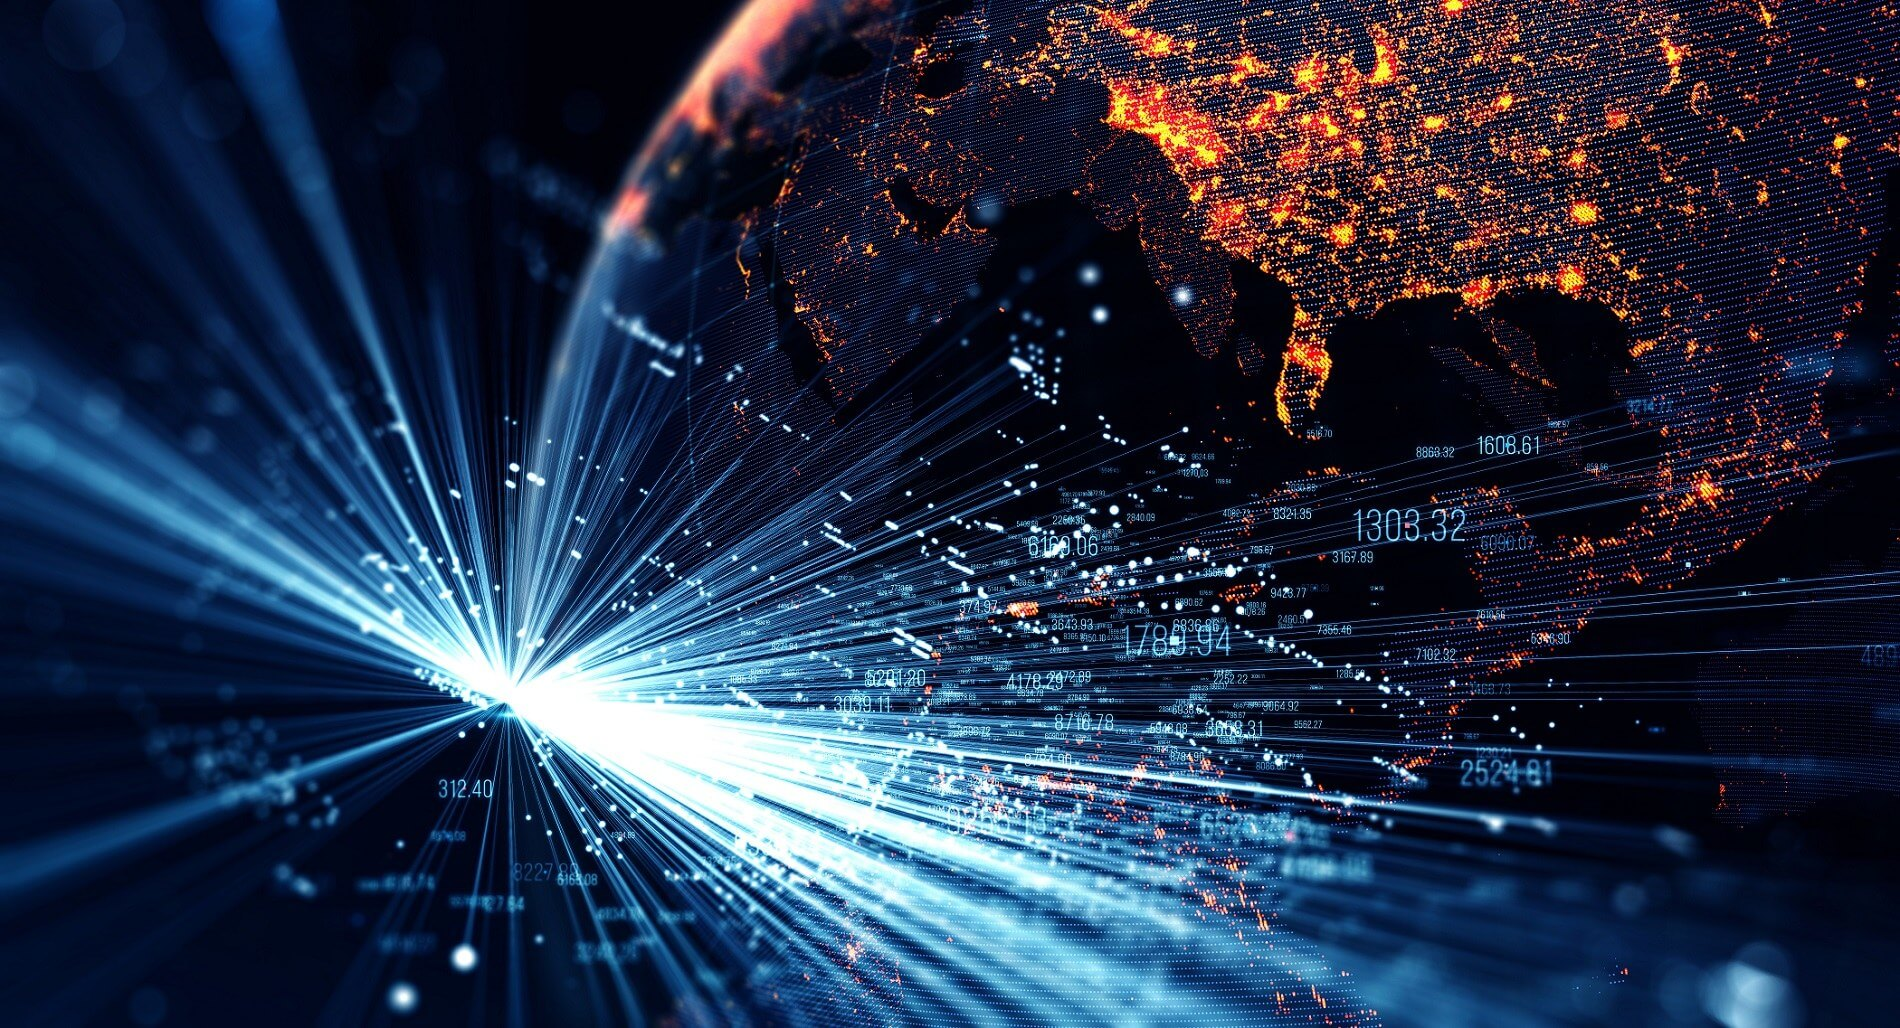 Check out these internet speeds and prices from multiple countries